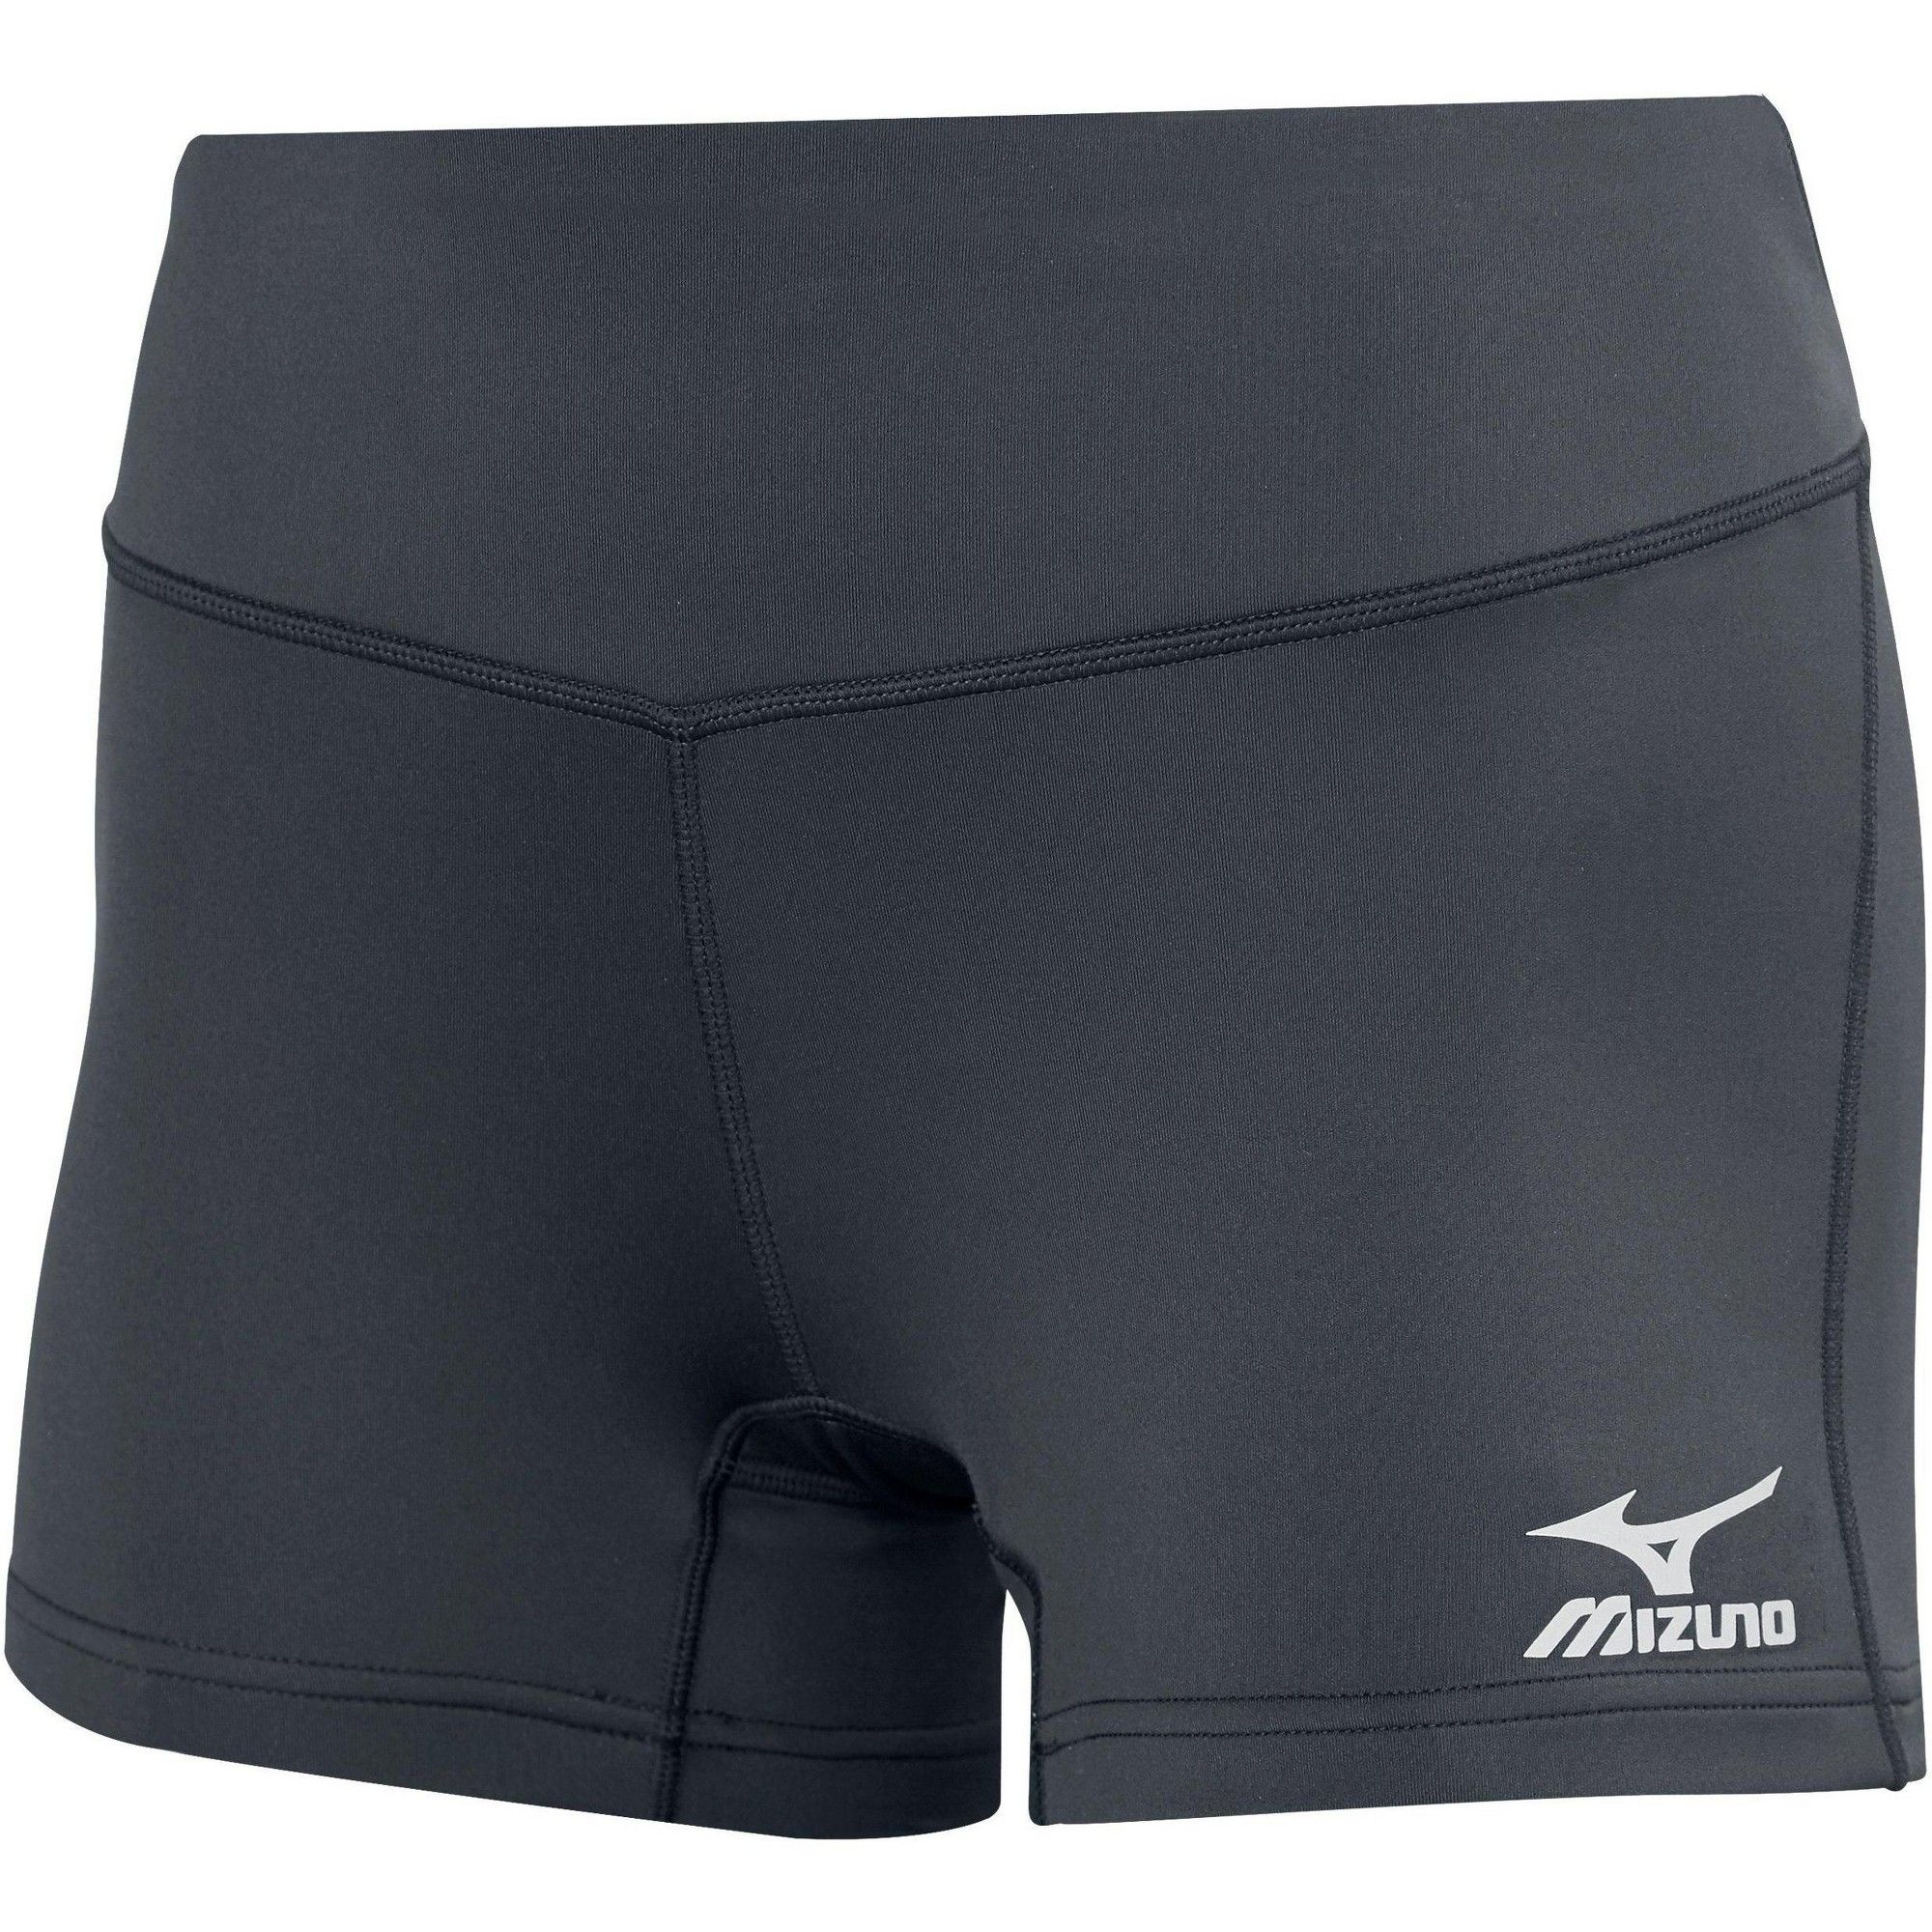 Mizuno Women S Victory 3 5 Inseam Volleyball Shorts Size Extra Large In Color Charcoal Grey 9292 Volleyball Spandex Shorts Volleyball Shorts Volleyball Spandex